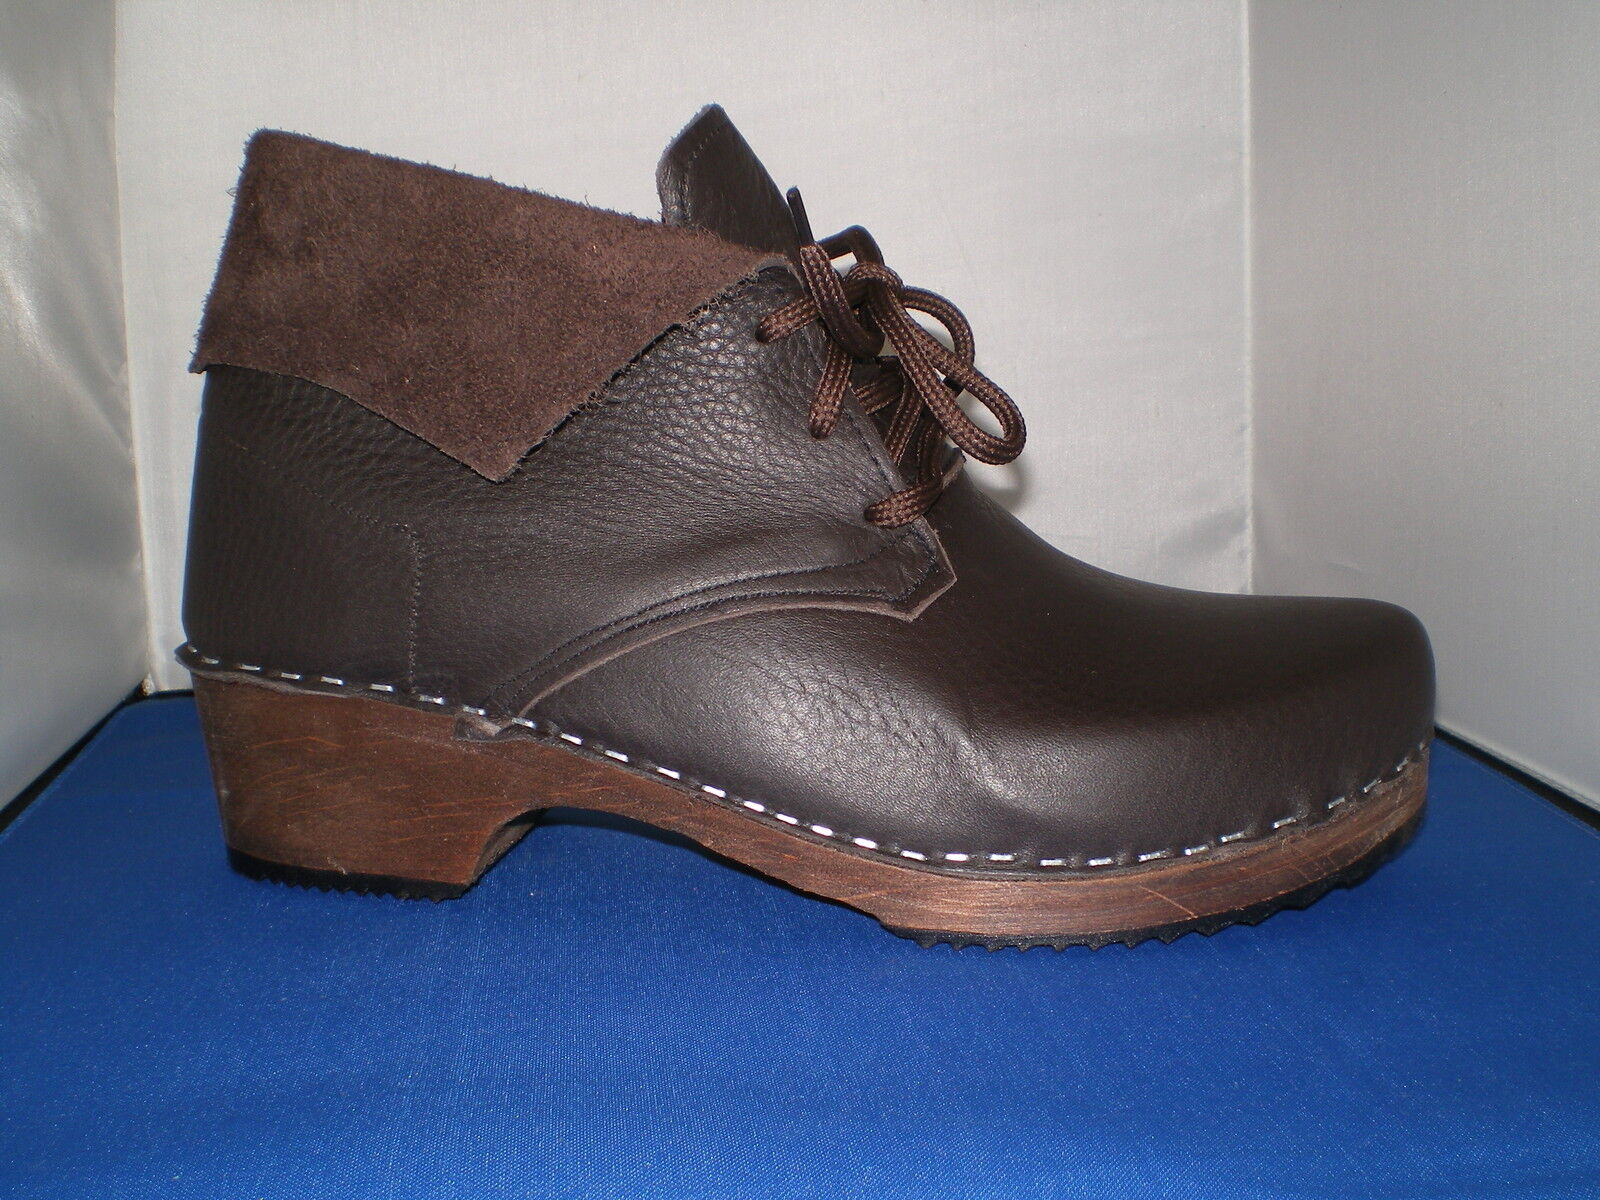 HAND in Made in Scarborough Suola In Legno Stile Svedese in HAND Pelle Intasa BOOT unisex b3976f